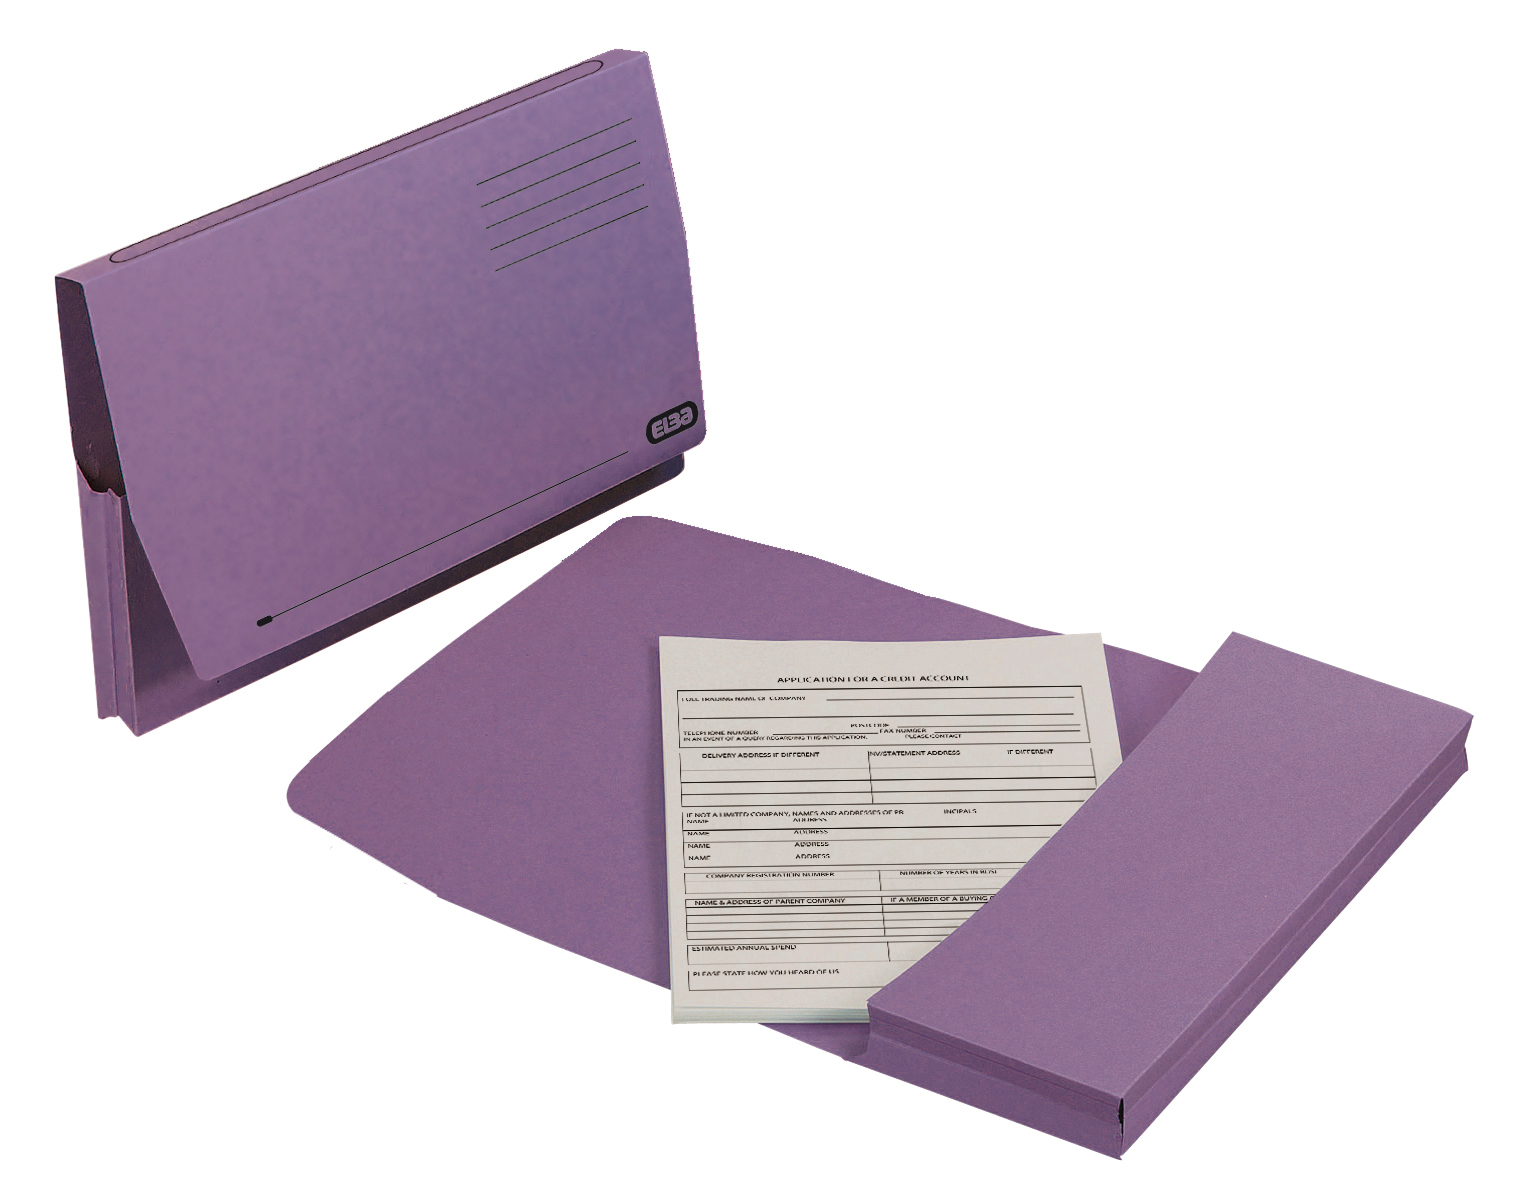 Elba Document Wallet Full Flap 260gsm Capacity 32mm Foolscap Mauve Ref 100090253 [Pack 50]